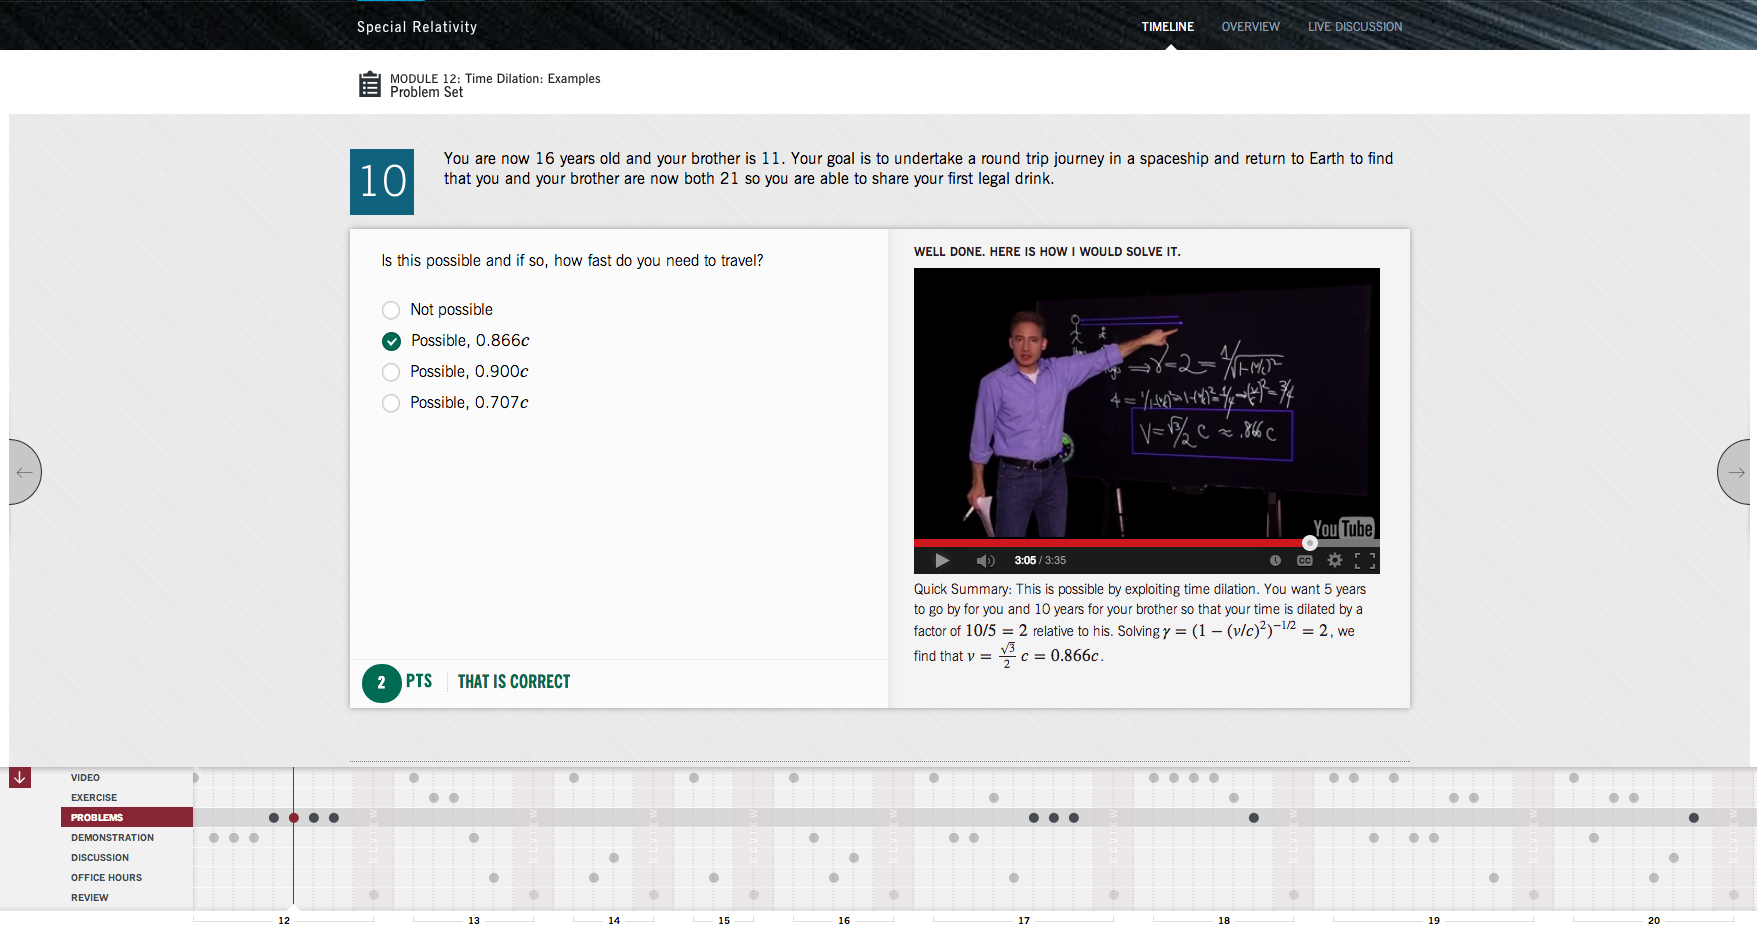 The website's timeline view lets you track your progress through all the modules of a course.